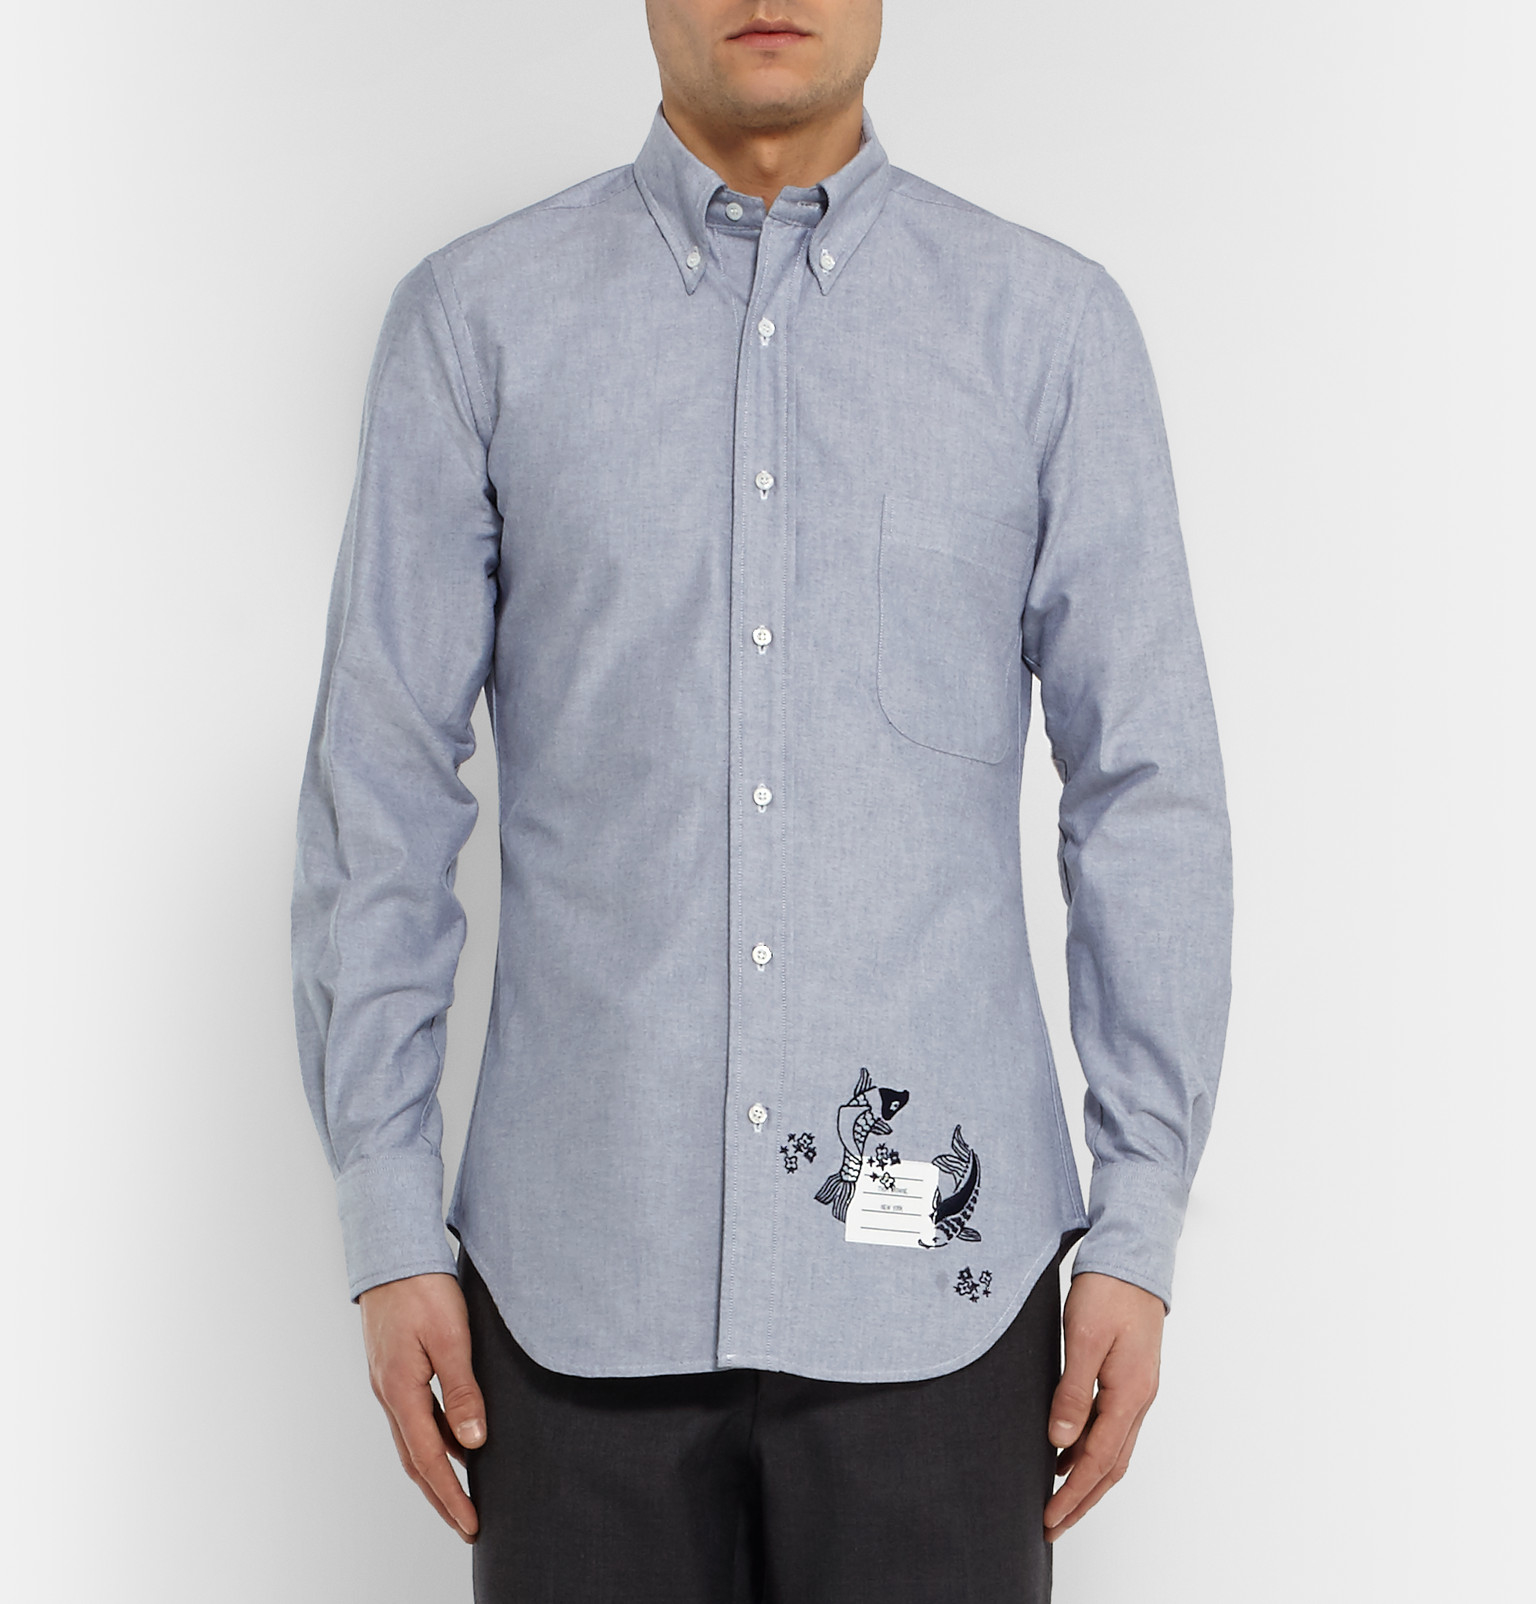 Thom browne embroidered fish shirt in blue for men lyst